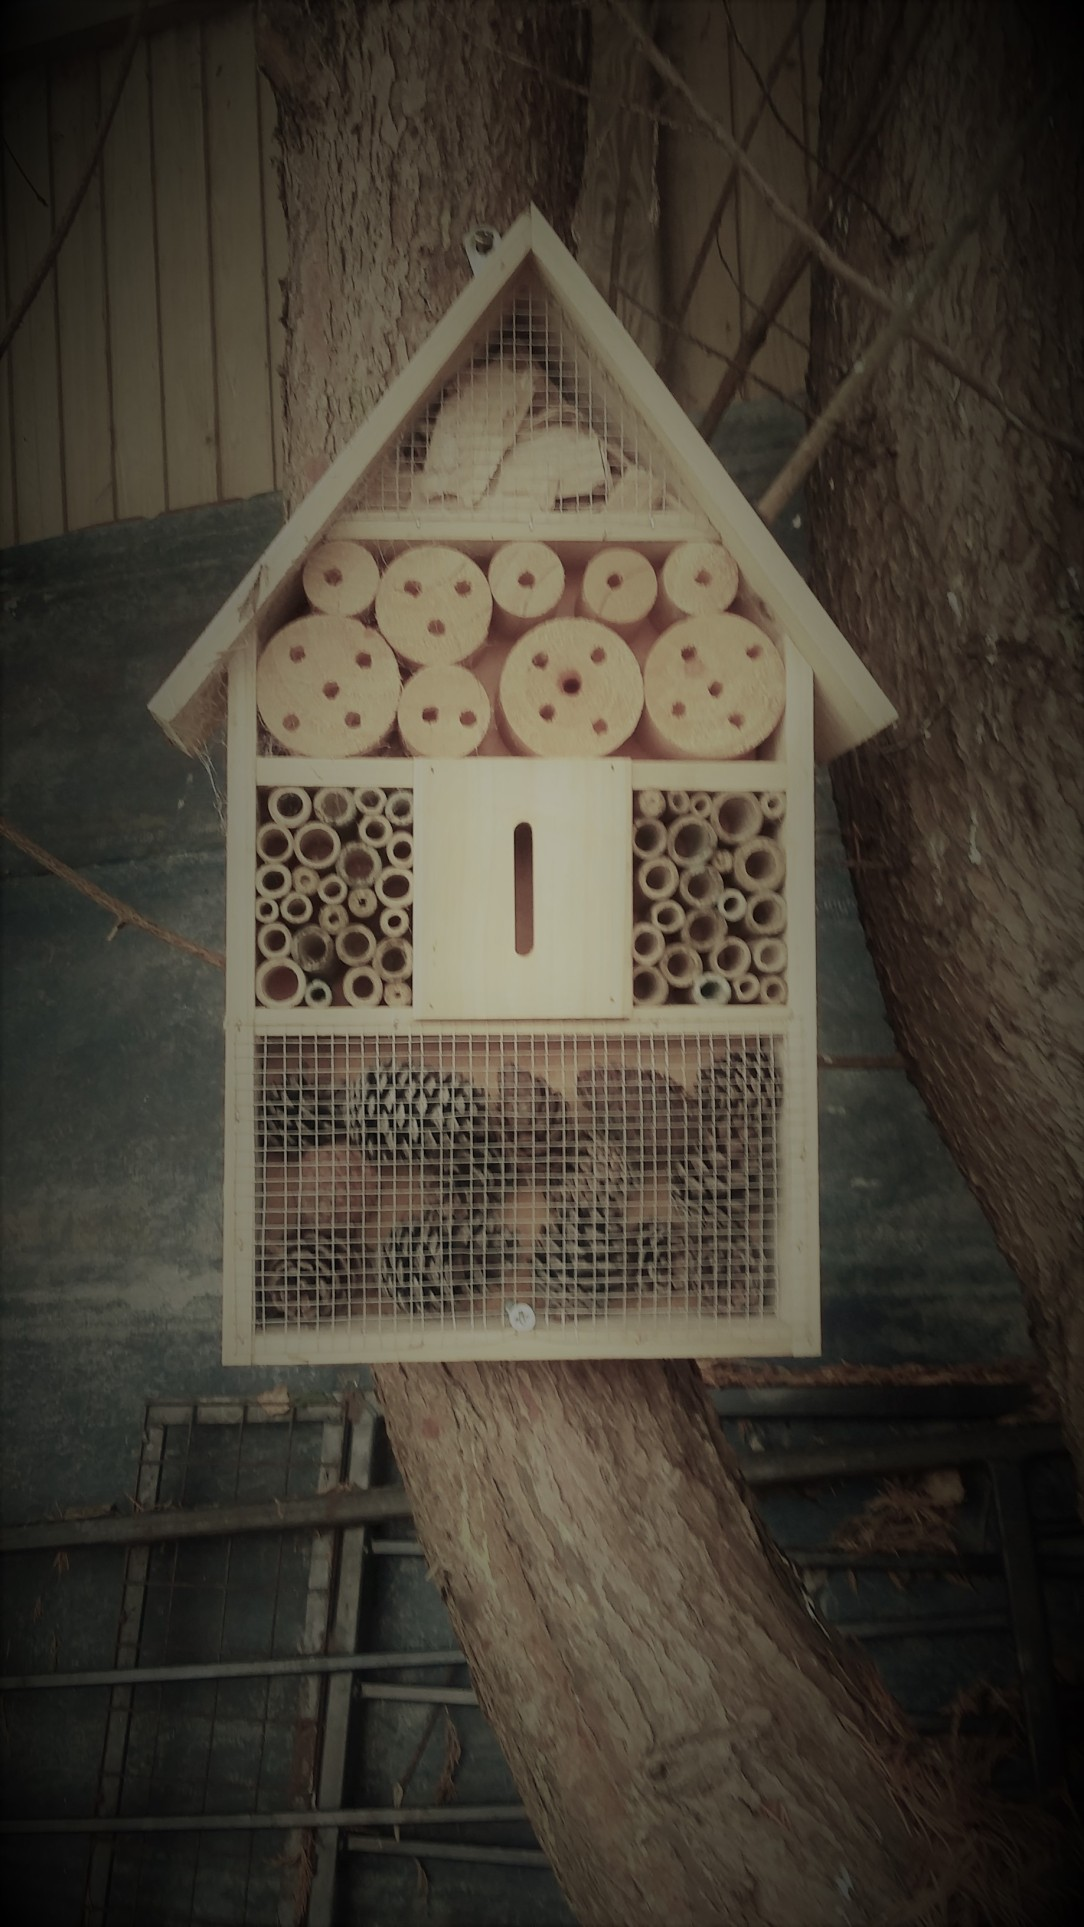 insect-hotel-2